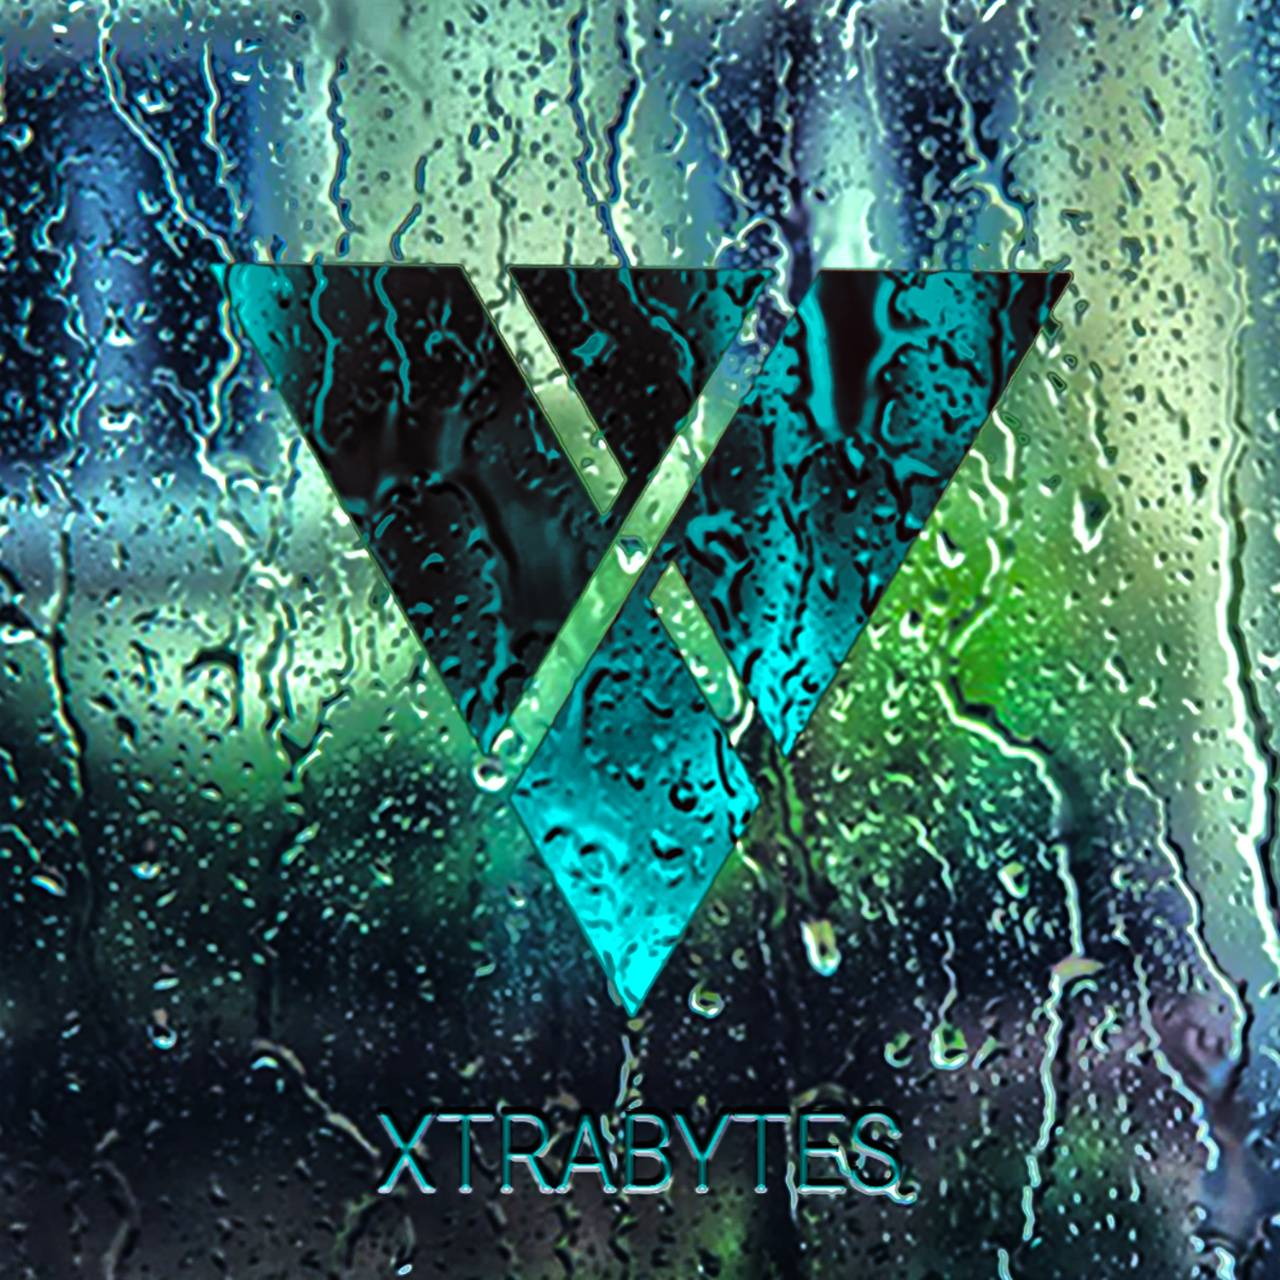 XTRABYTES Wallpaper